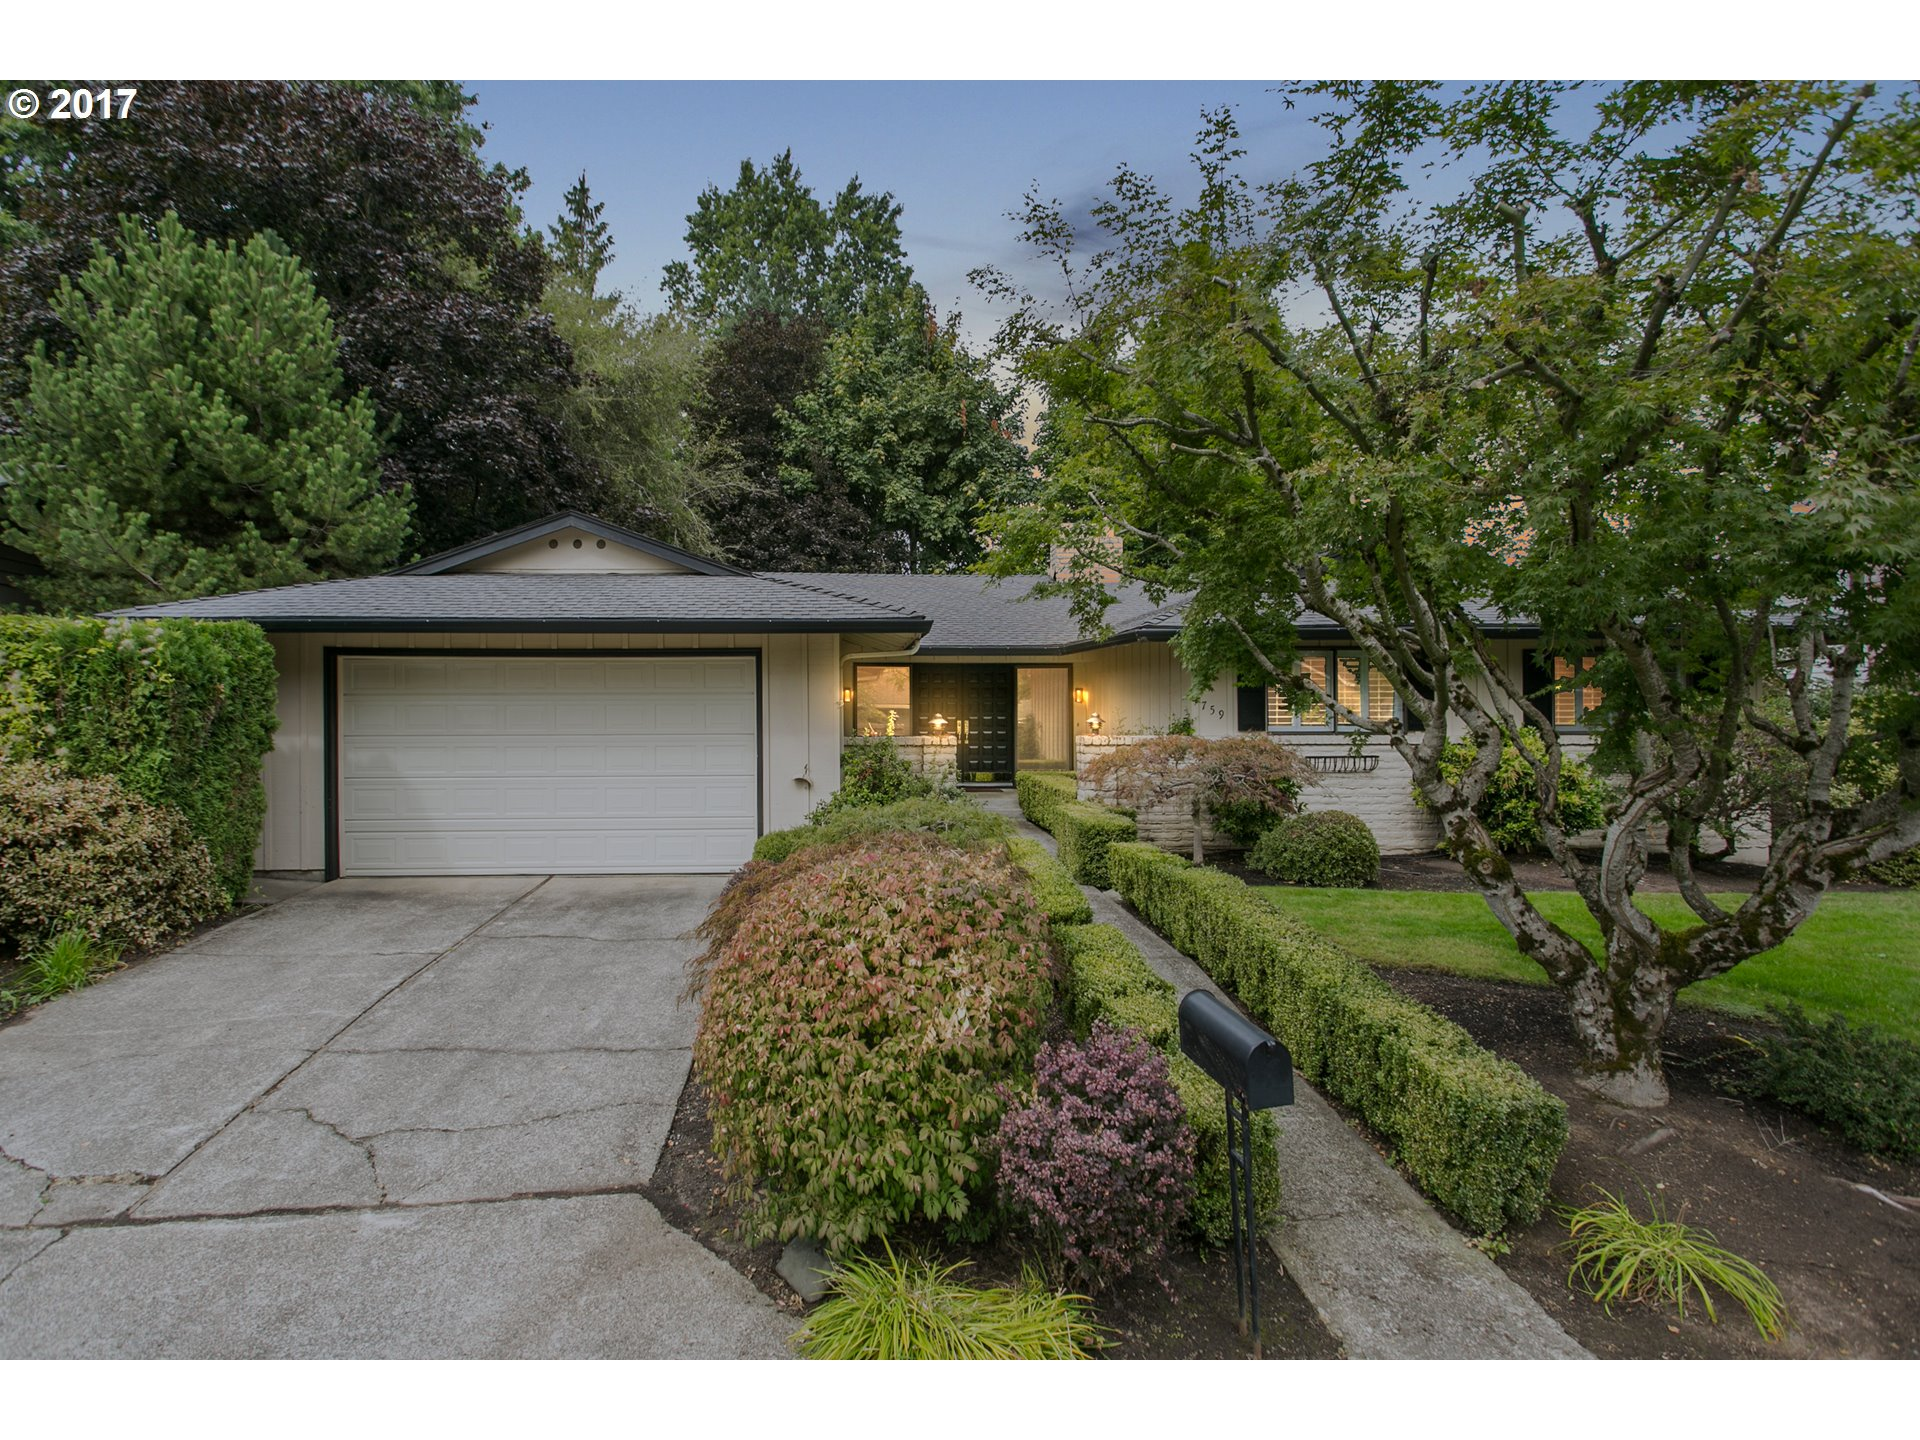 759 TIMBERLINE DR, Lake Oswego, OR 97034